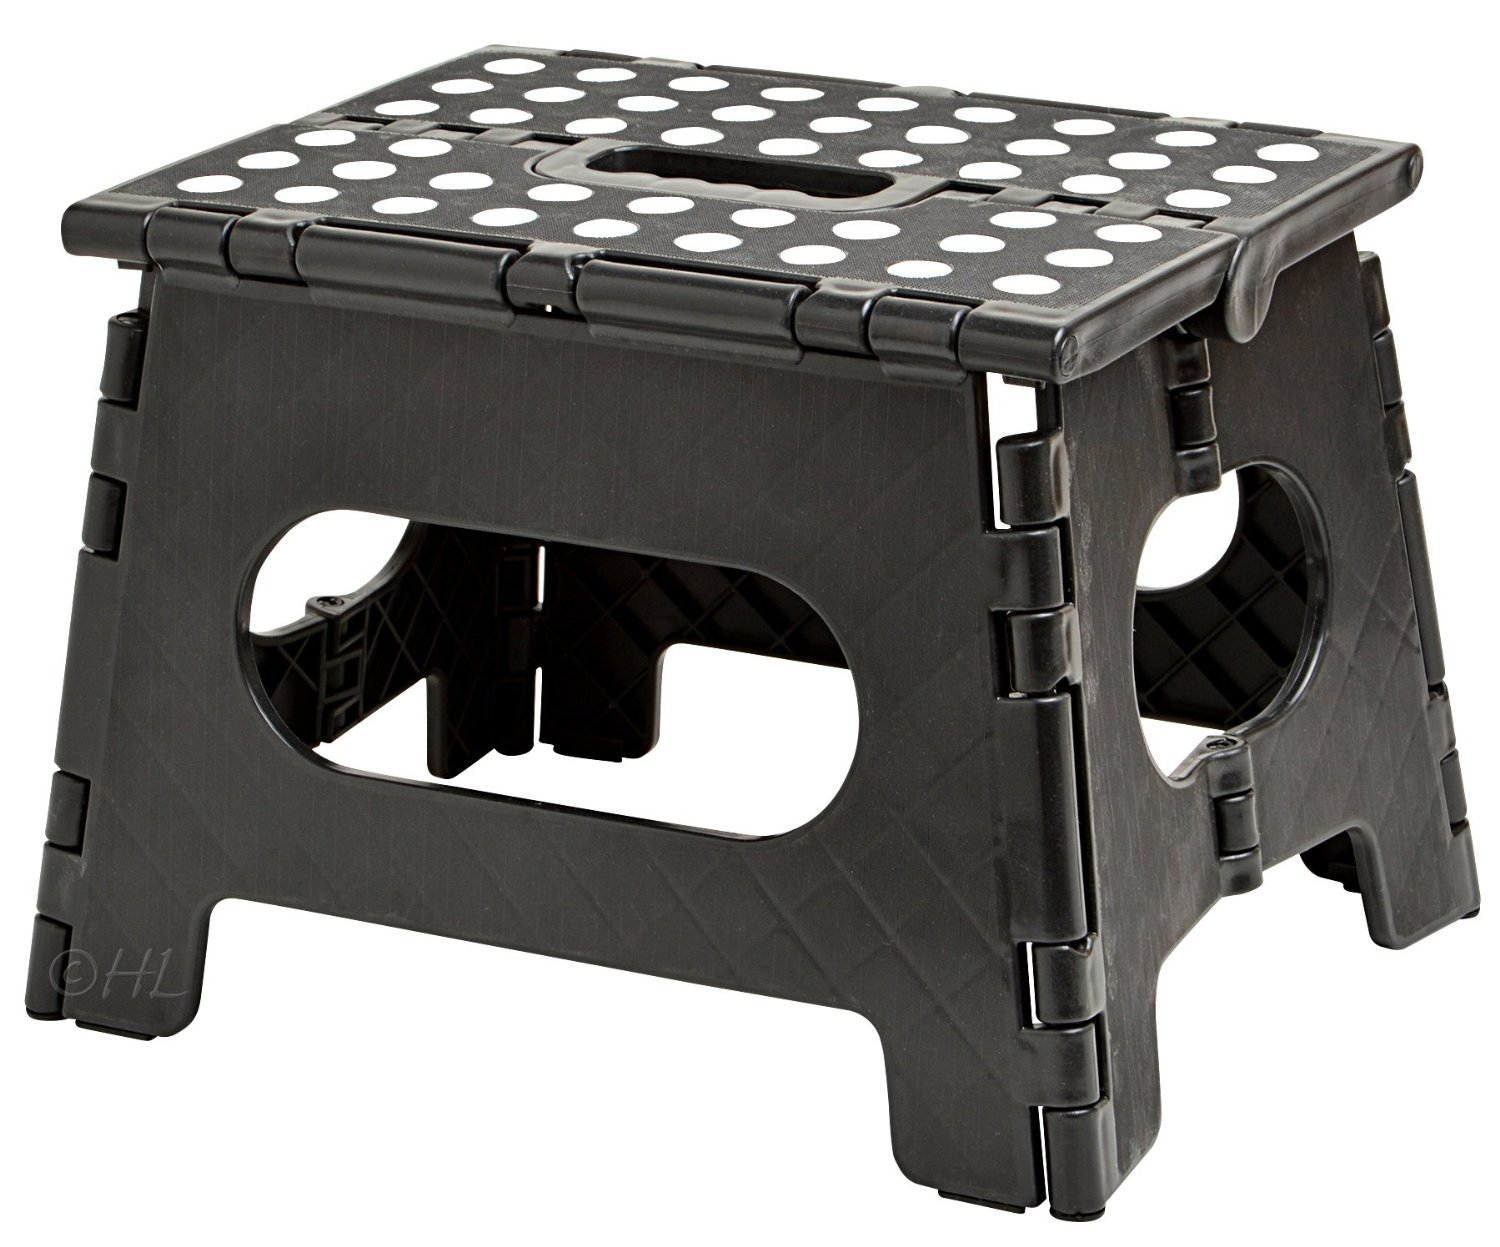 Low Profile Step Stool Thesteppingstool Com